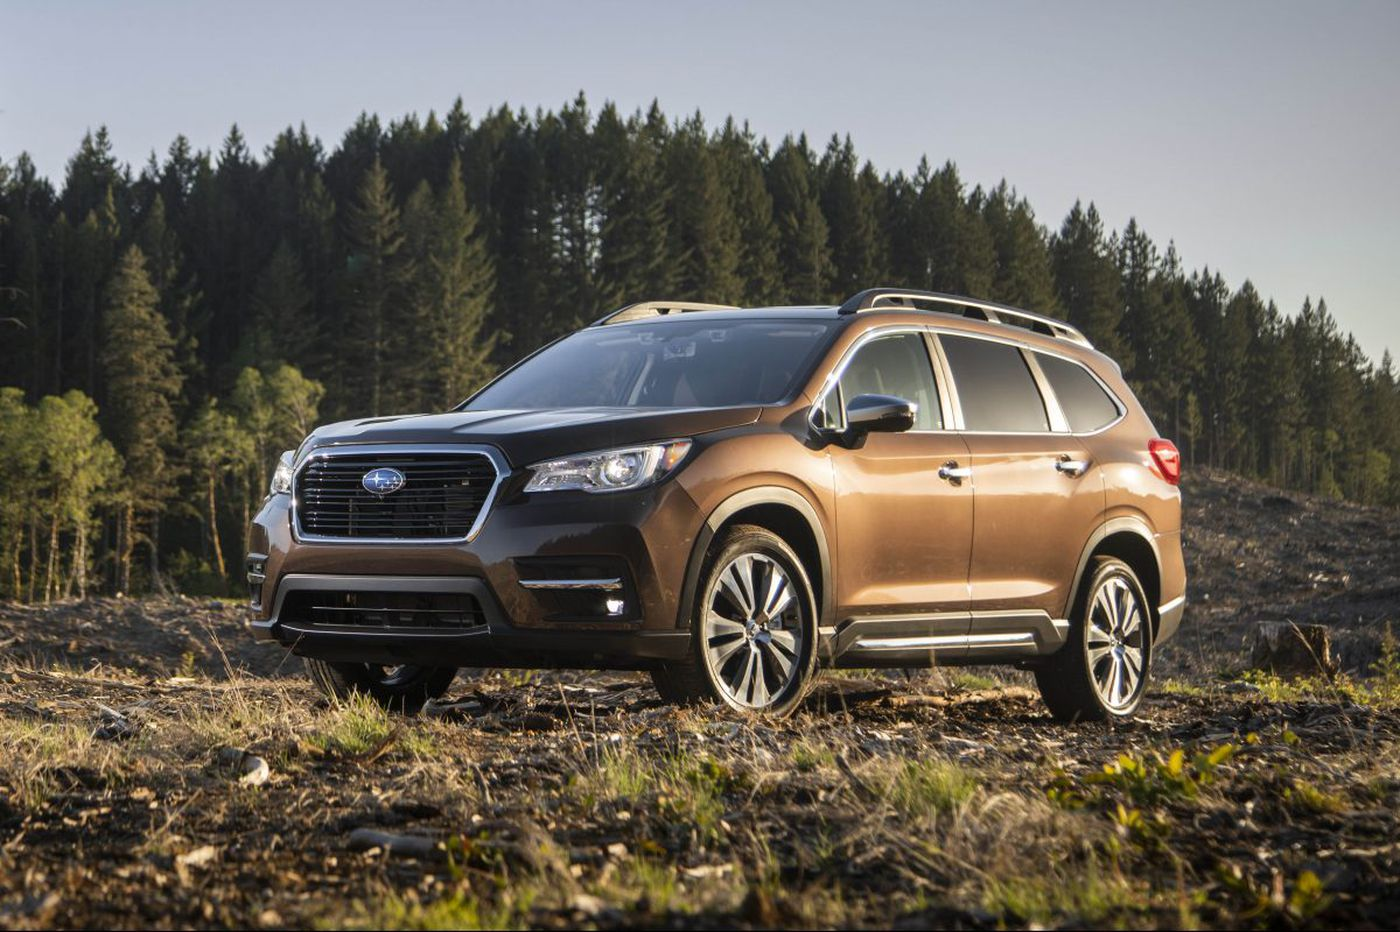 Subaru offers roomy new Ascent to compete with three-row crossovers